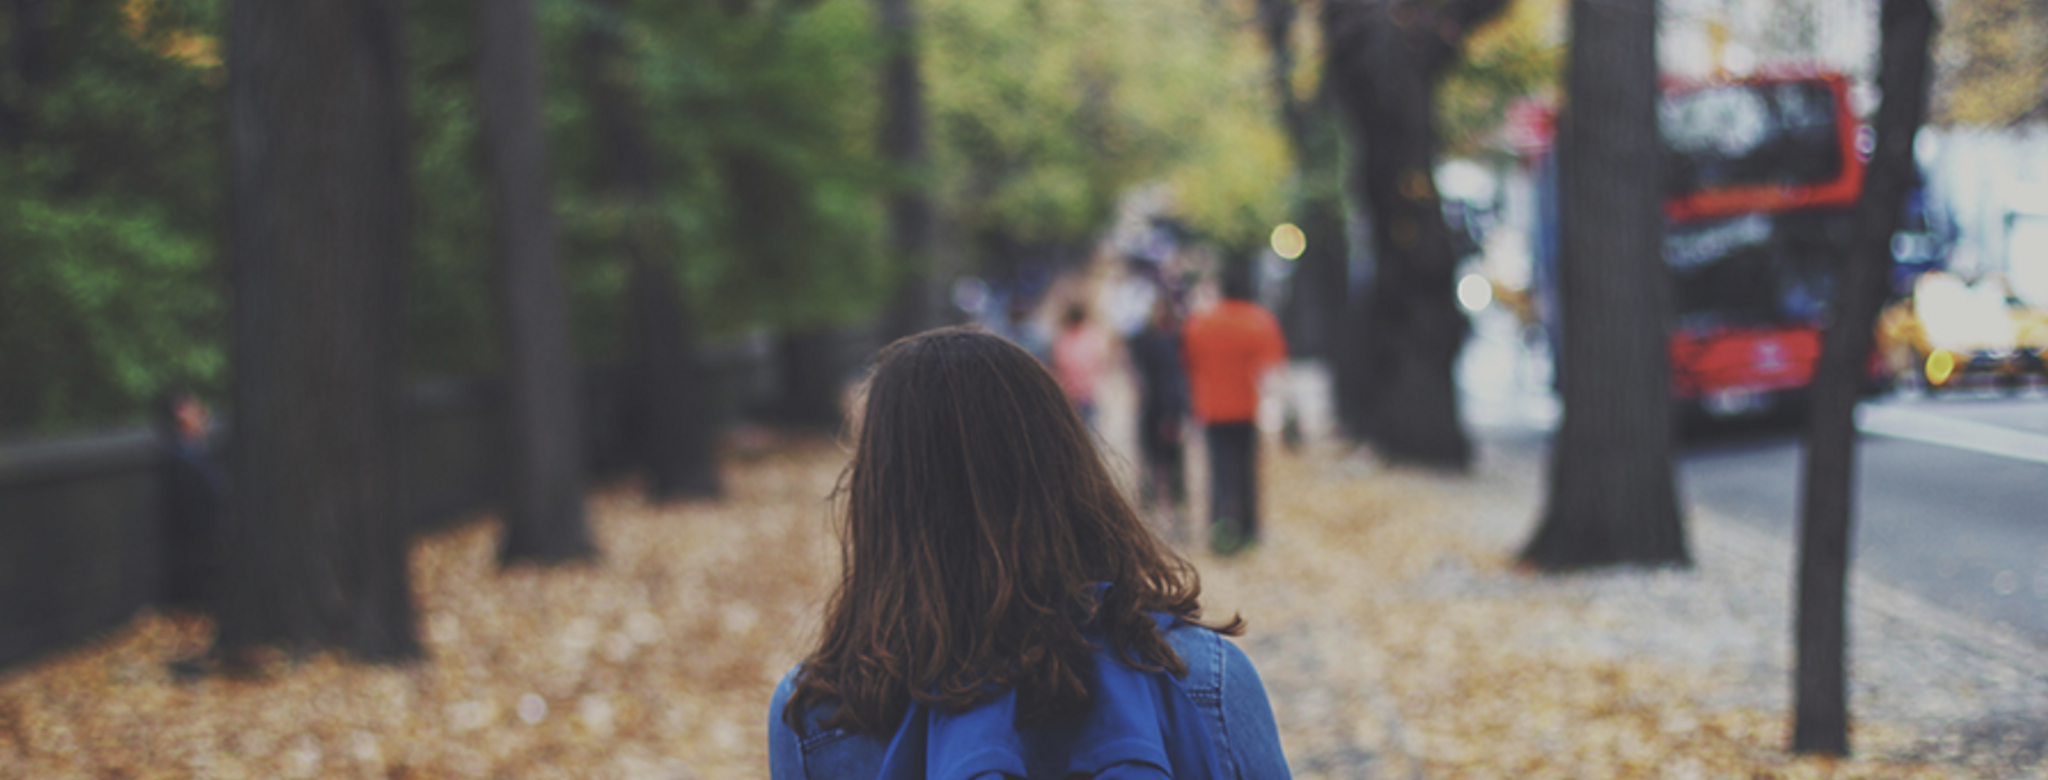 girl with backpack on walking down street in fall